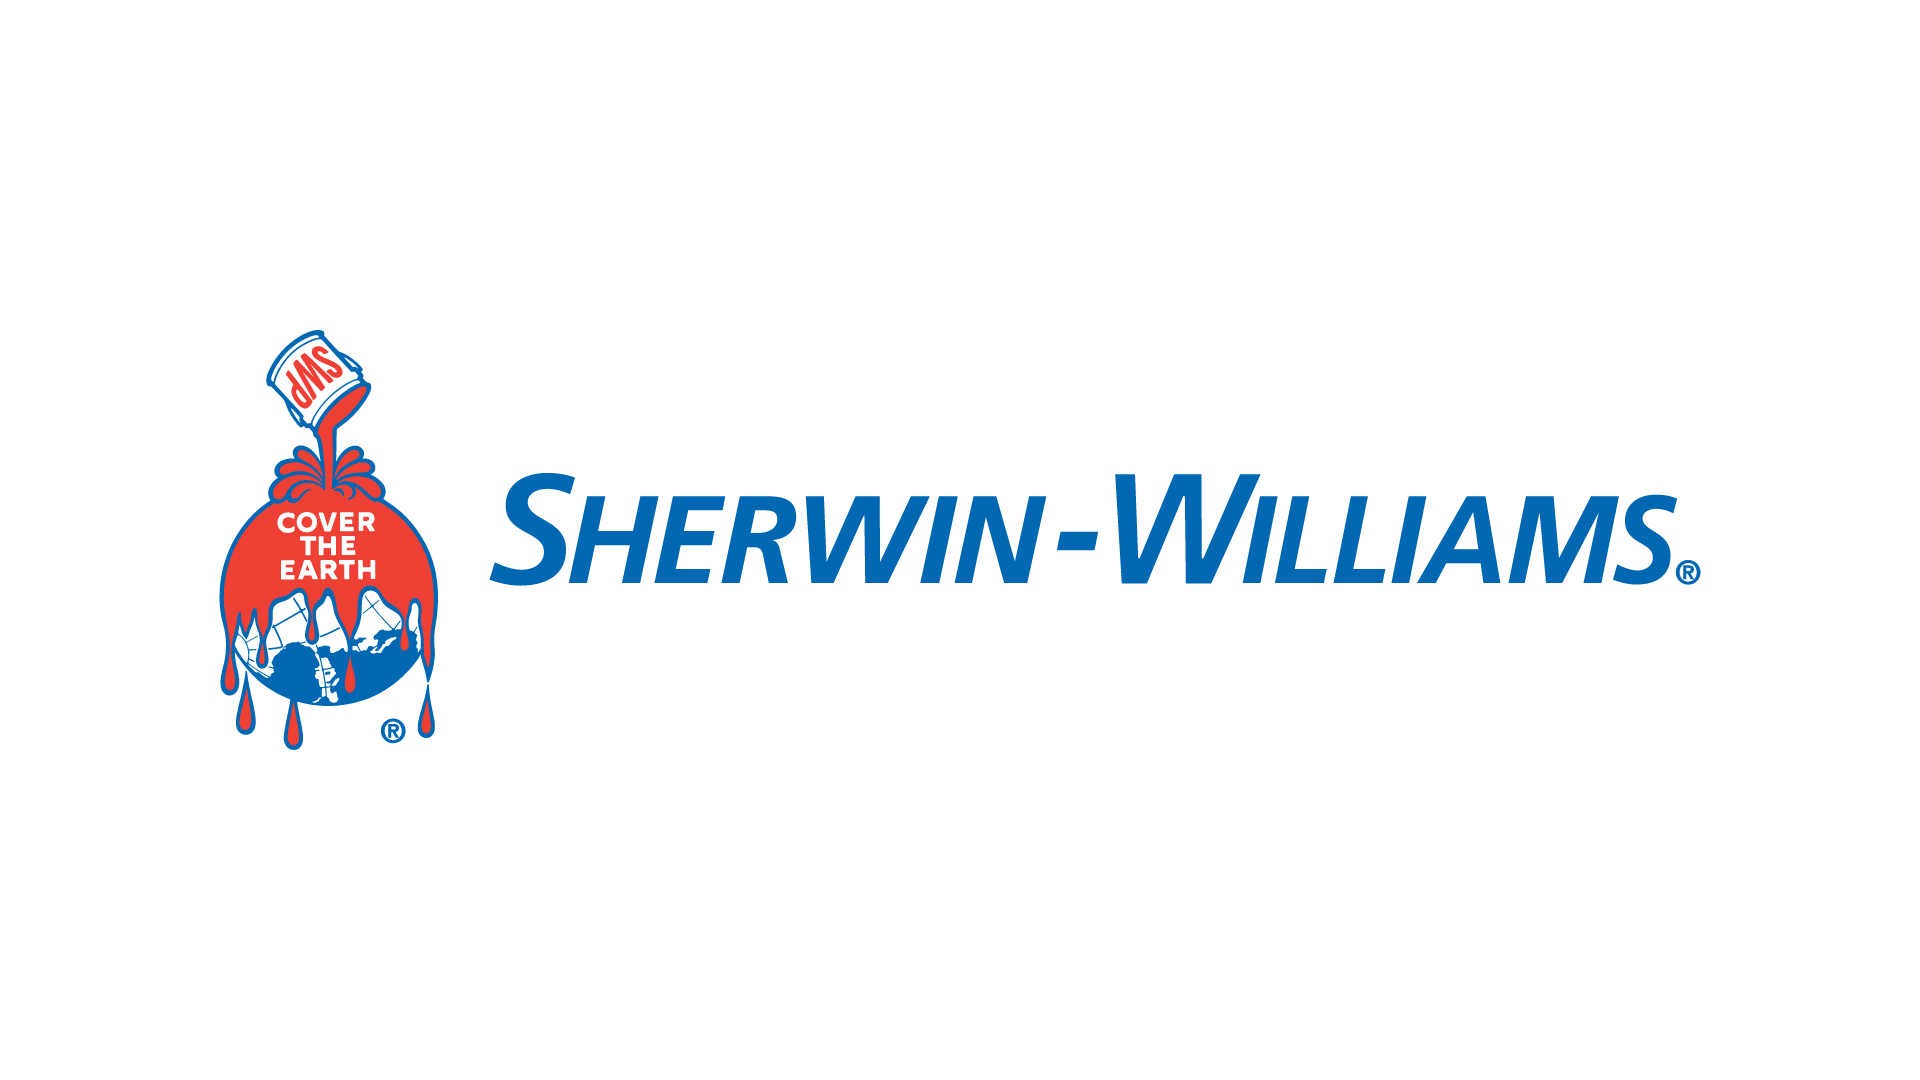 Sherwin Williams Stock Quote The Sherwinwilliams Company Nyse Shw Celebrates Their 150Th